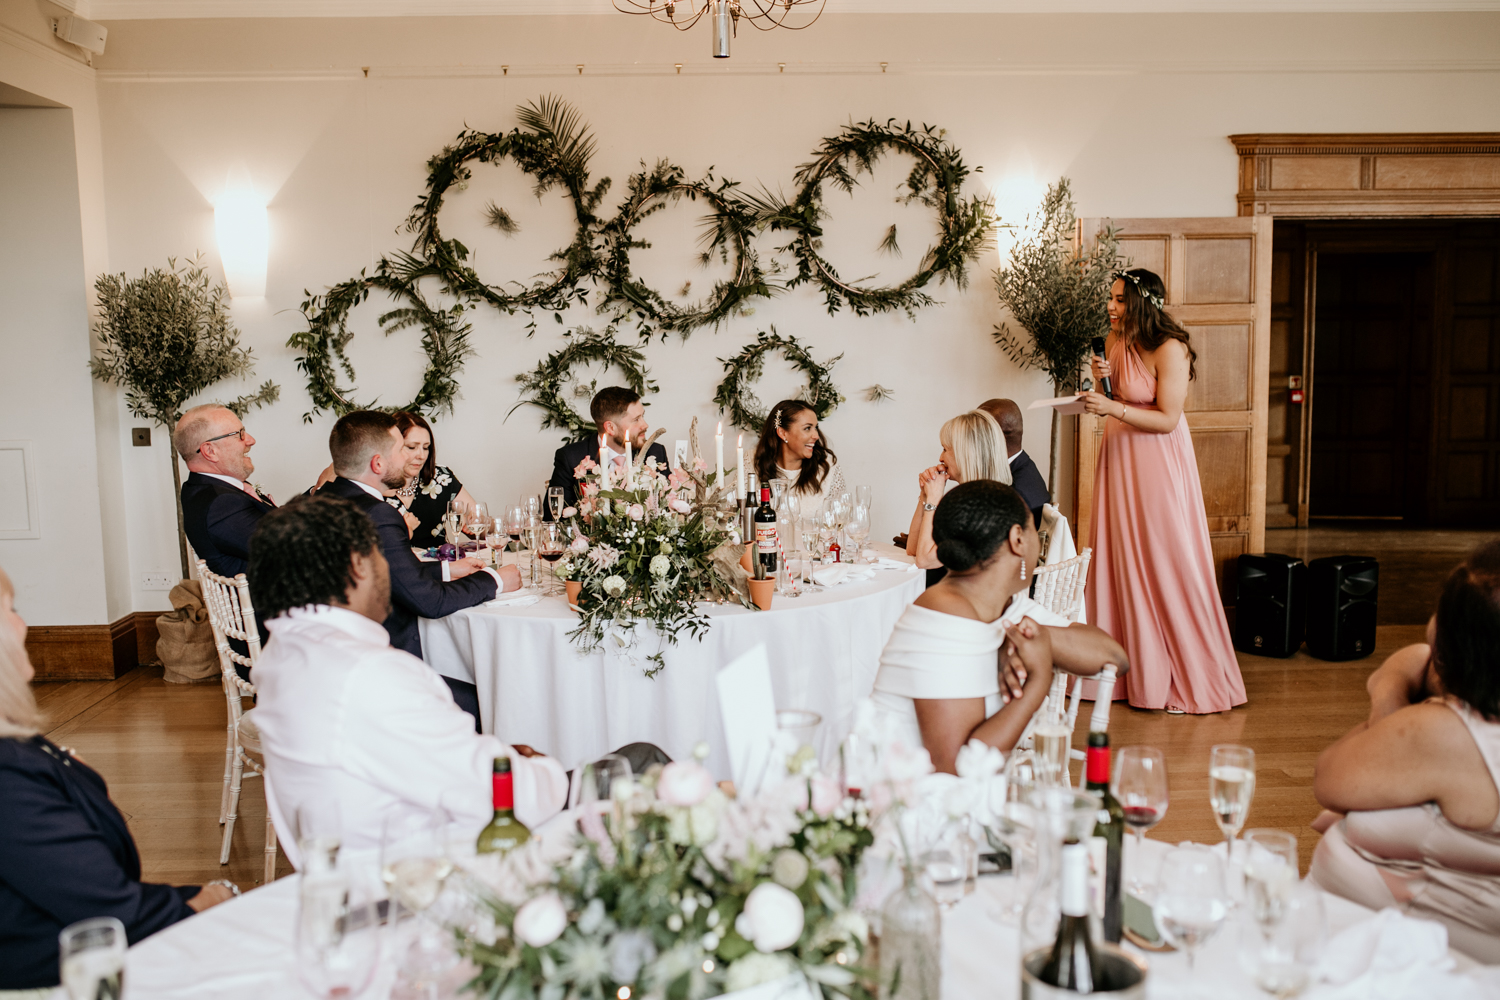 bridesmaids speech during the wedding reception at Coombe Lodge Blagdon wedding venue